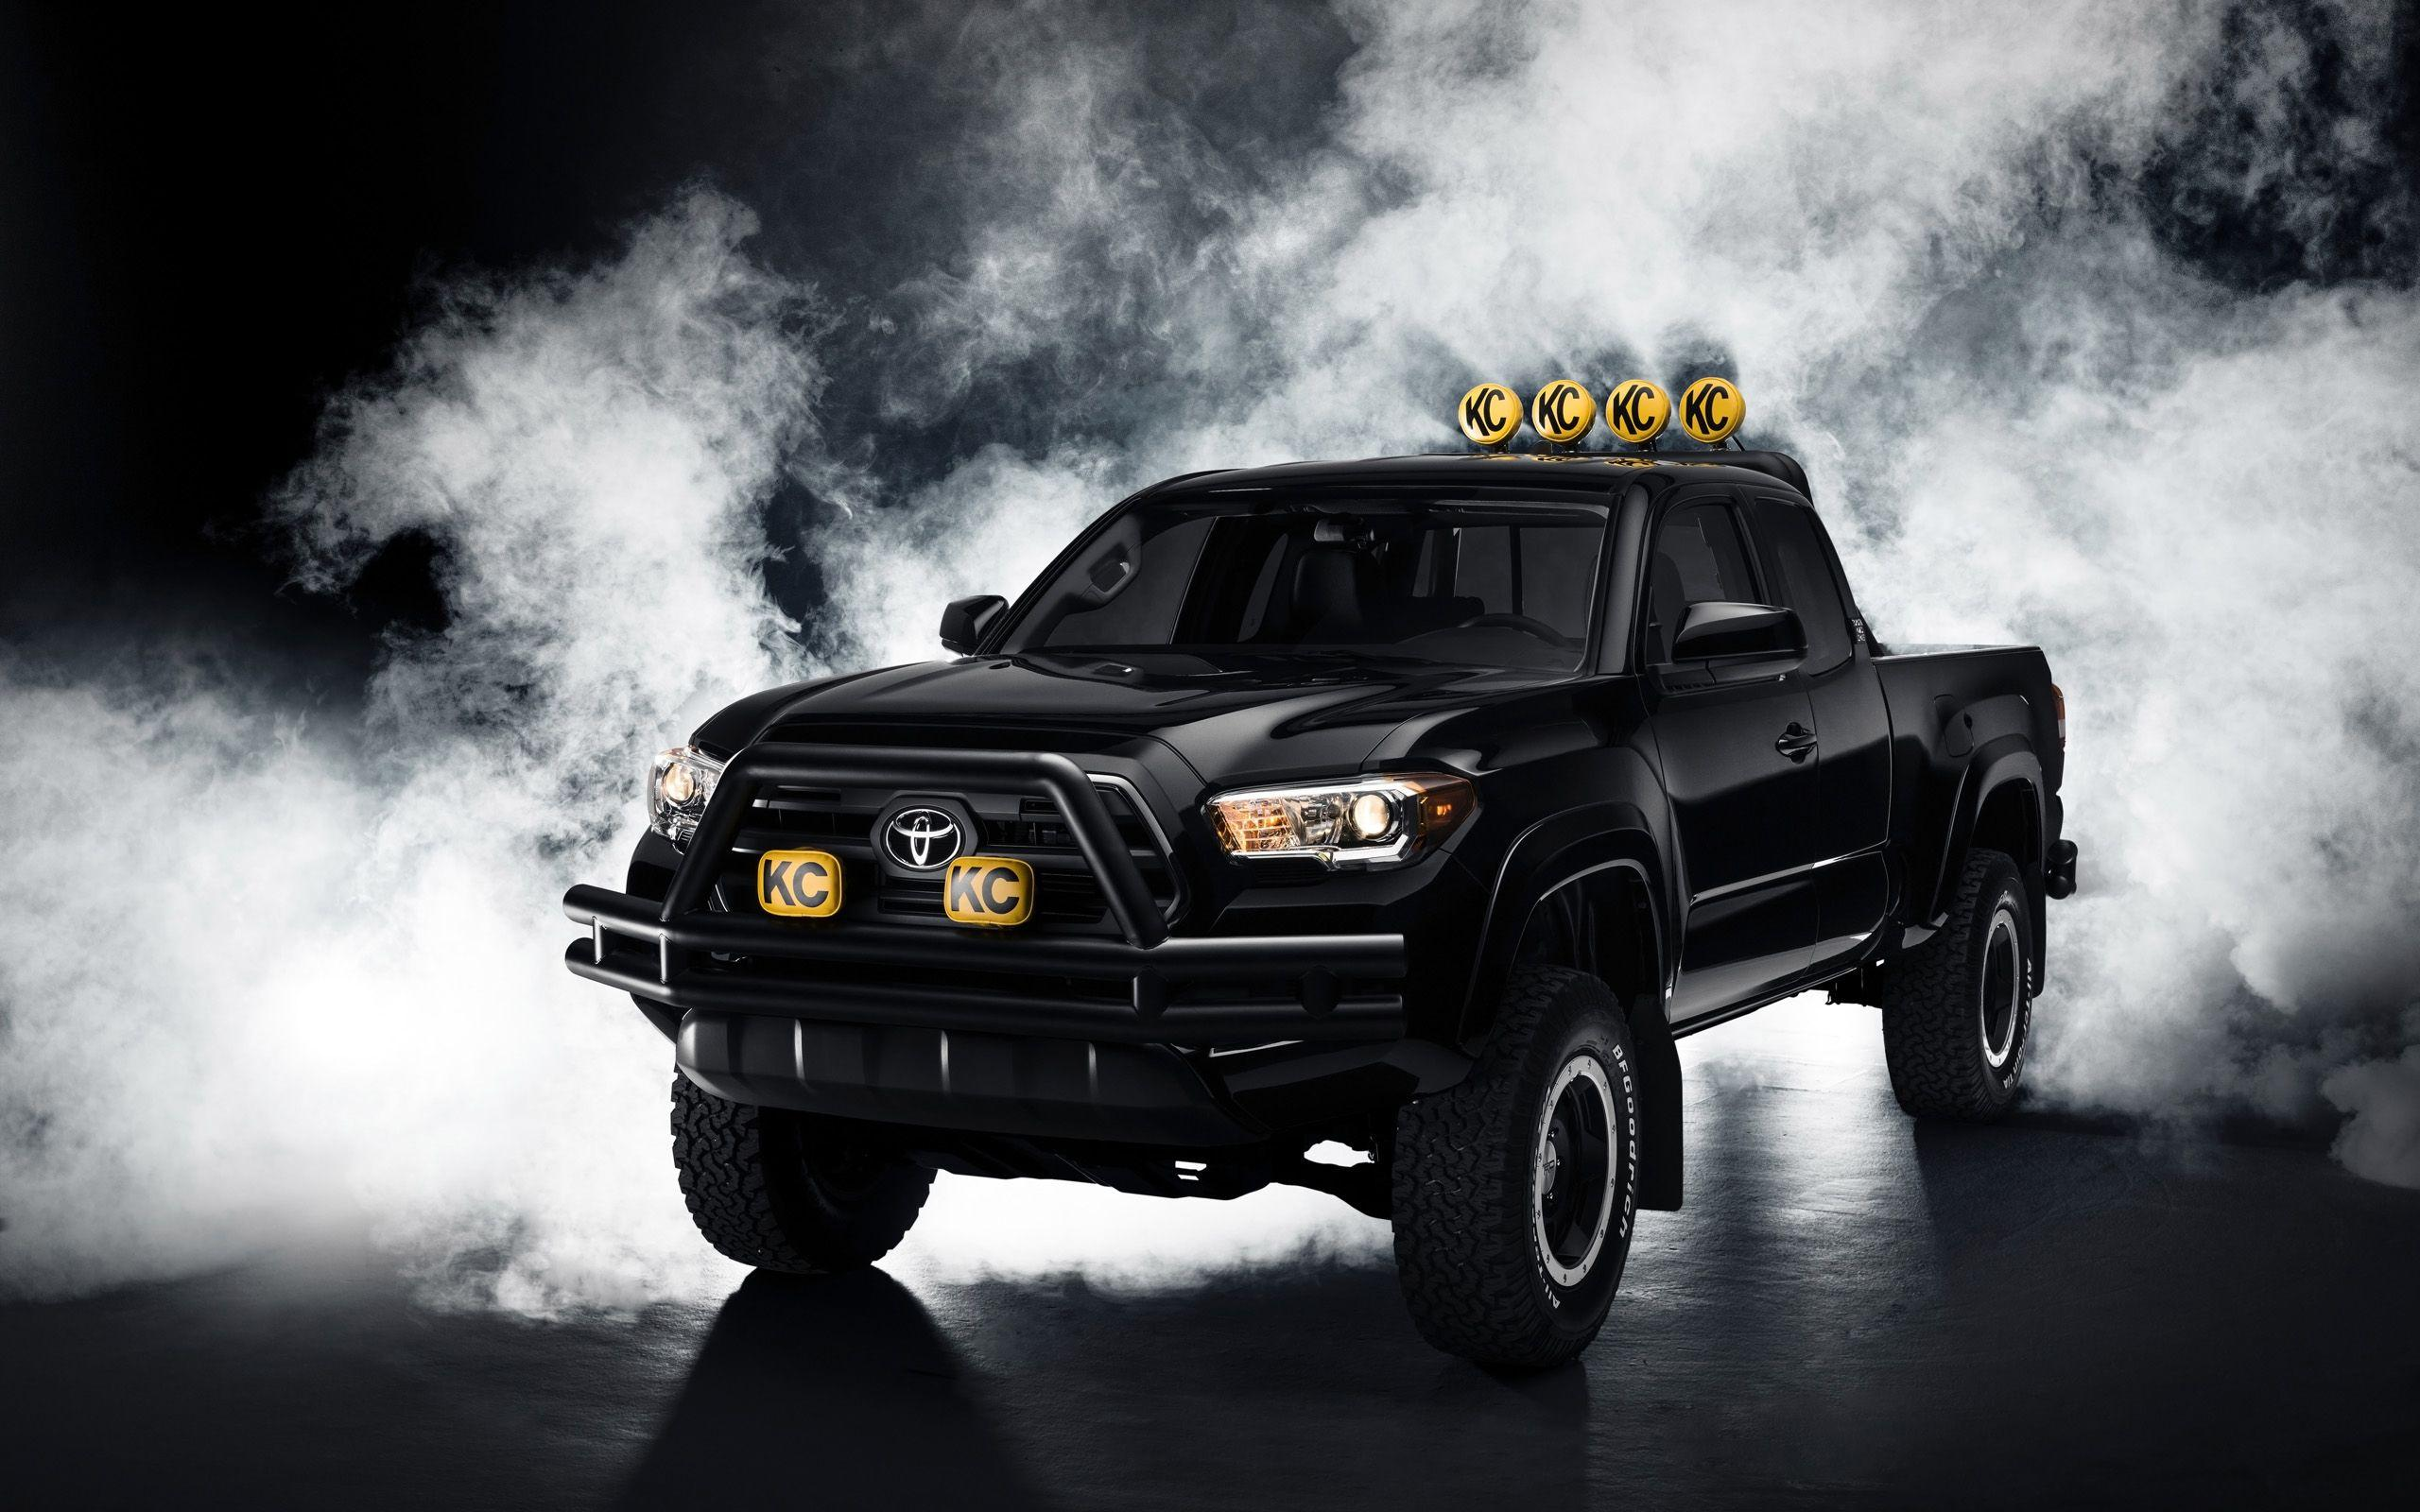 2016 Toyota Tacoma Back to the Future Wallpapers